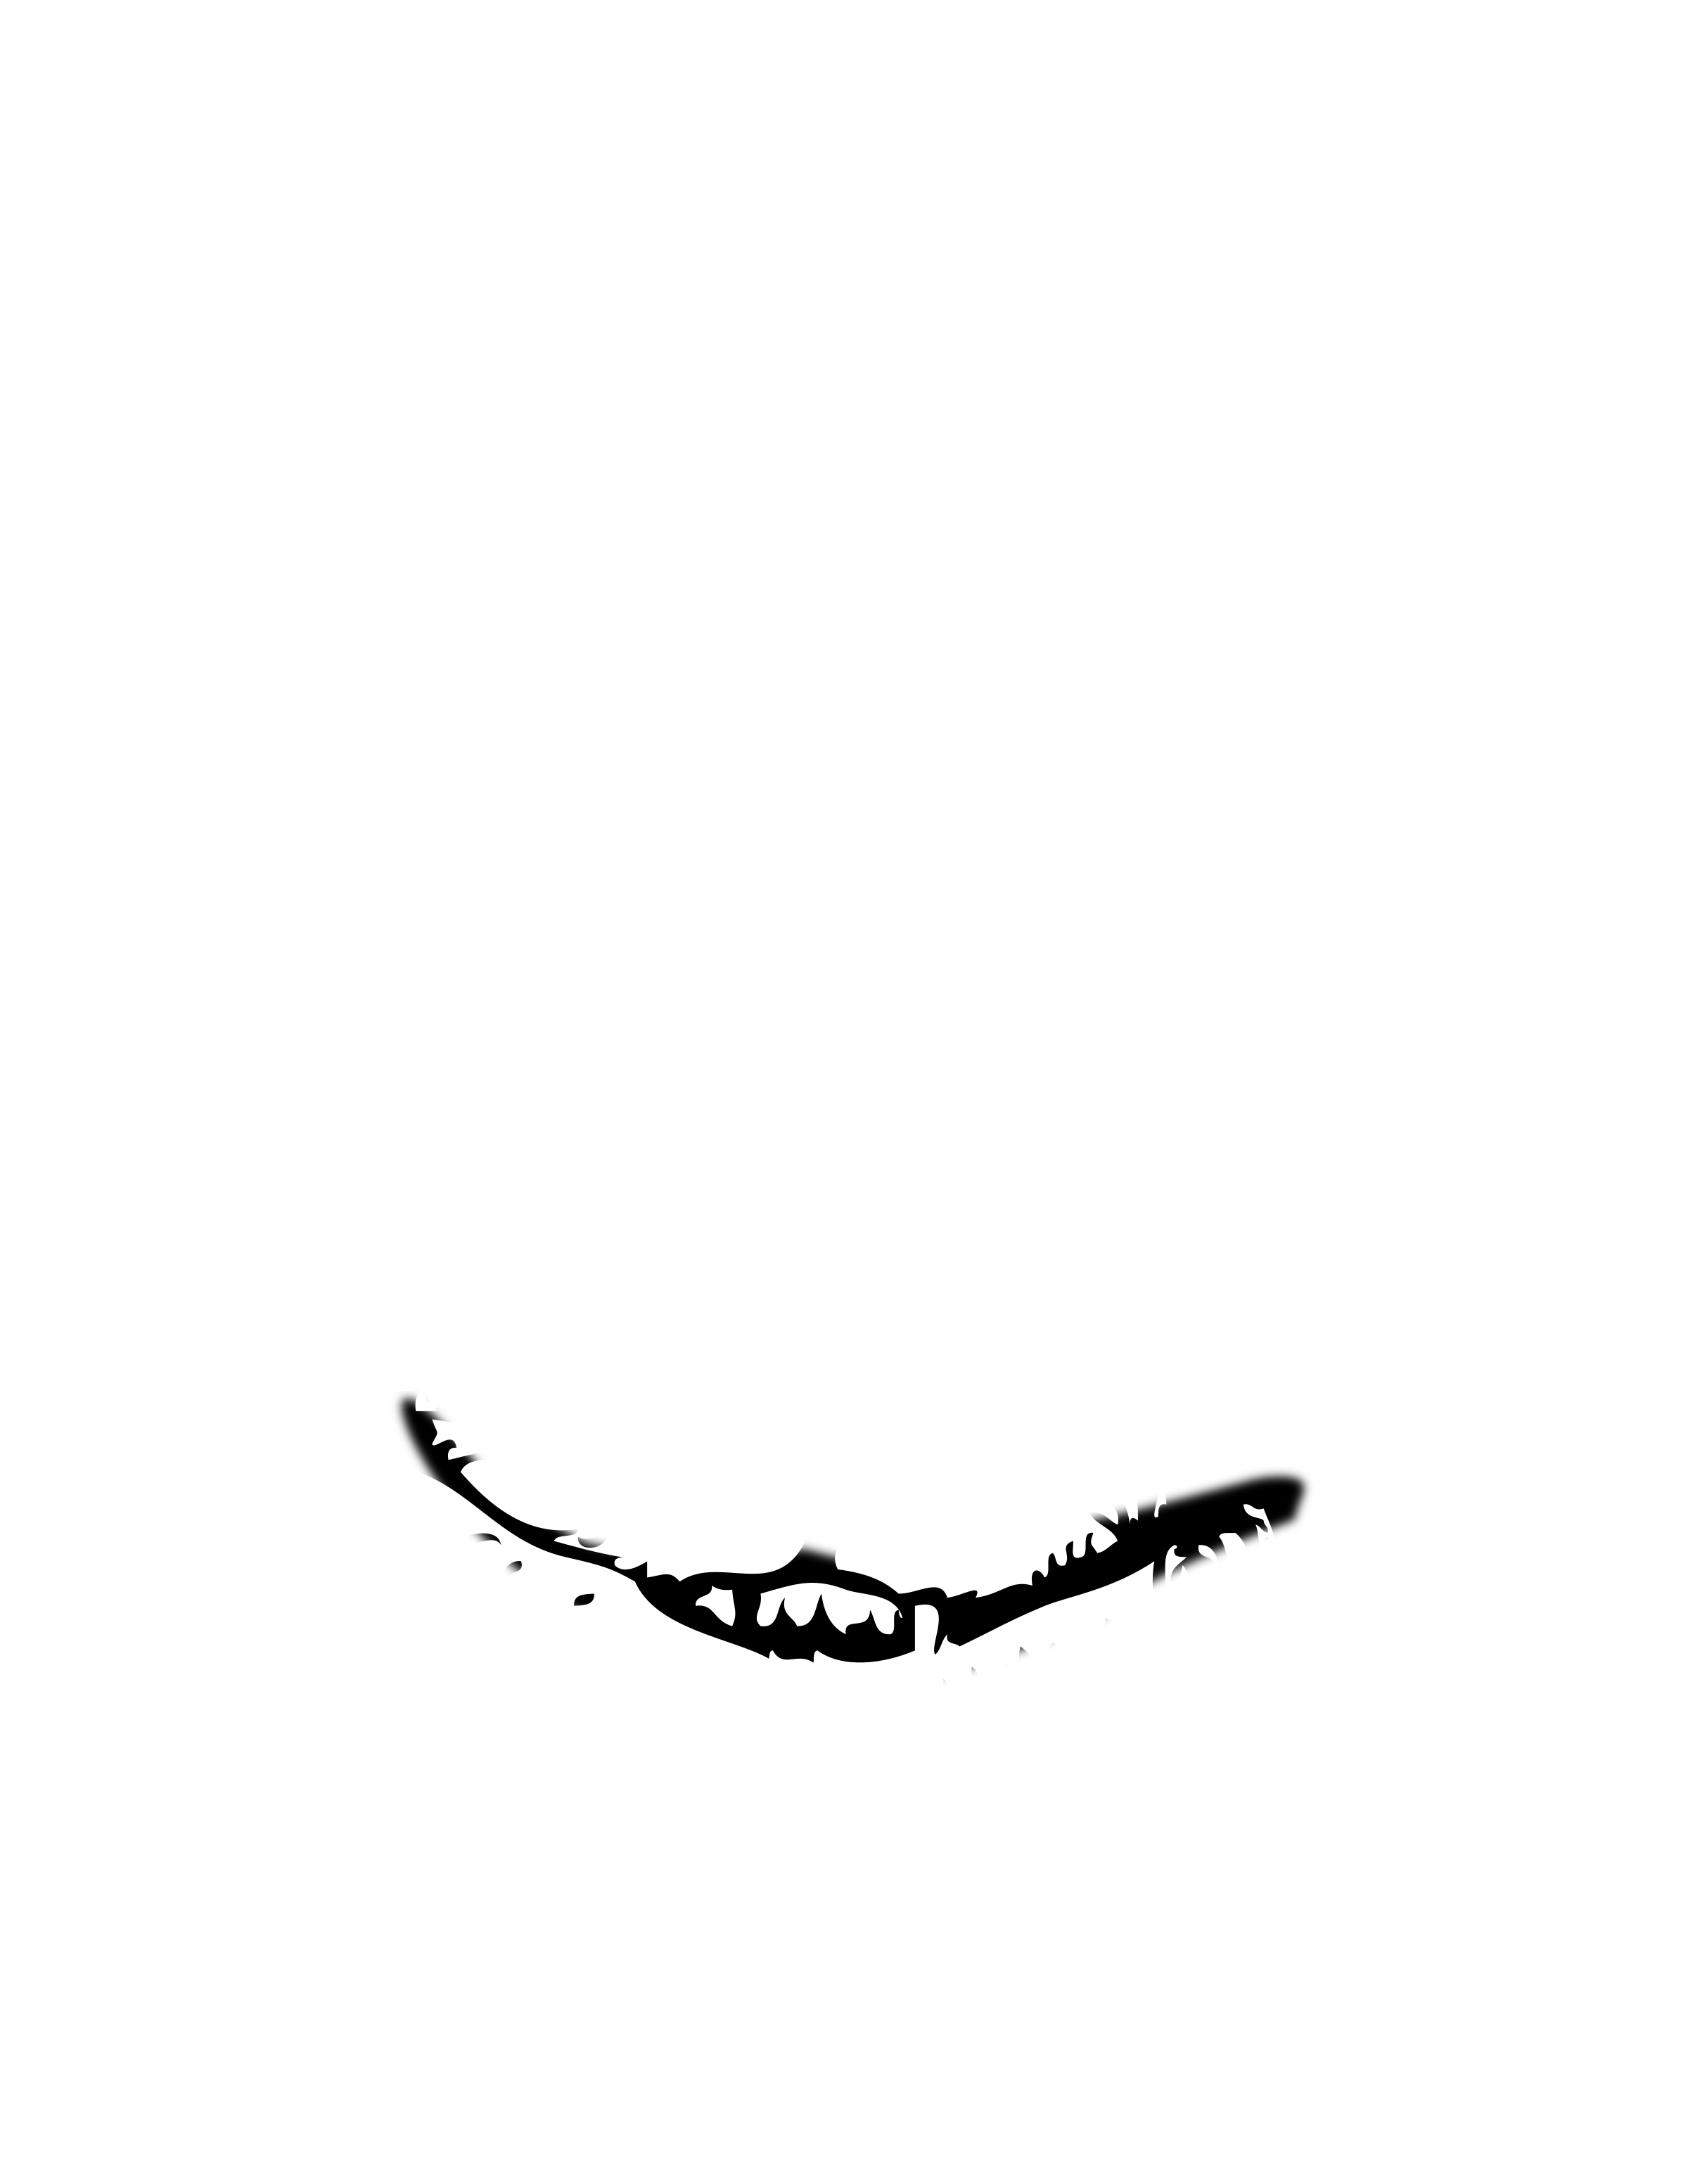 Cheshire cat smile clipart clipart stock Clipart - Animated Cheshire Cat clipart stock